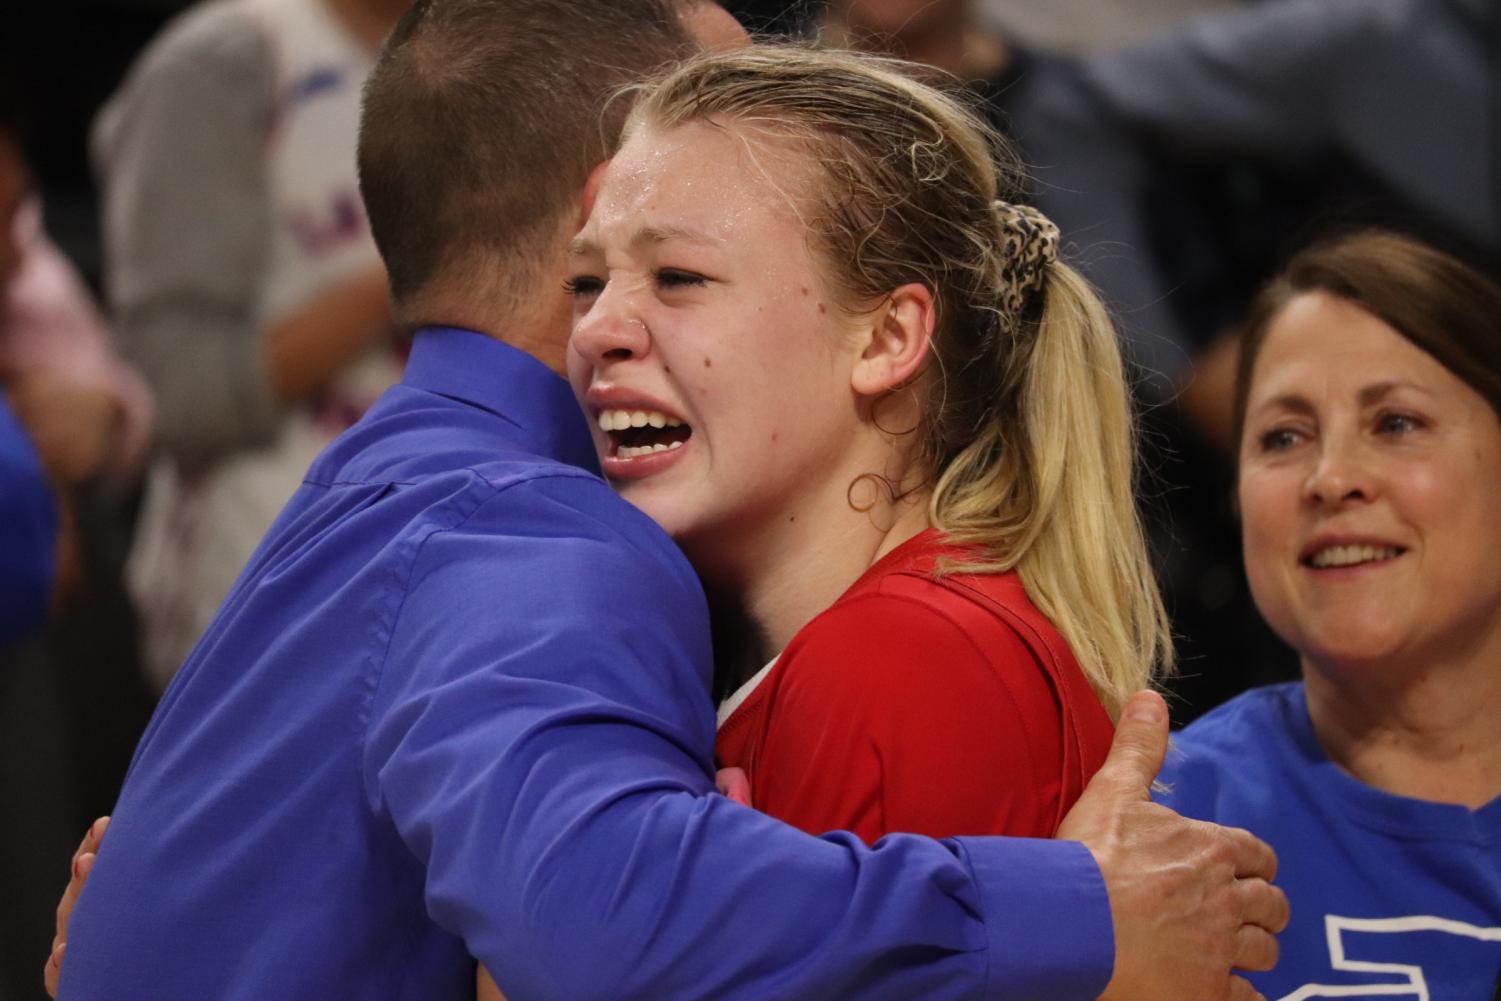 Jim+Simms%2C+one+of+the+assistant+coaches%2C+embraces+Niebergall+as+tears+run+down+her+face.